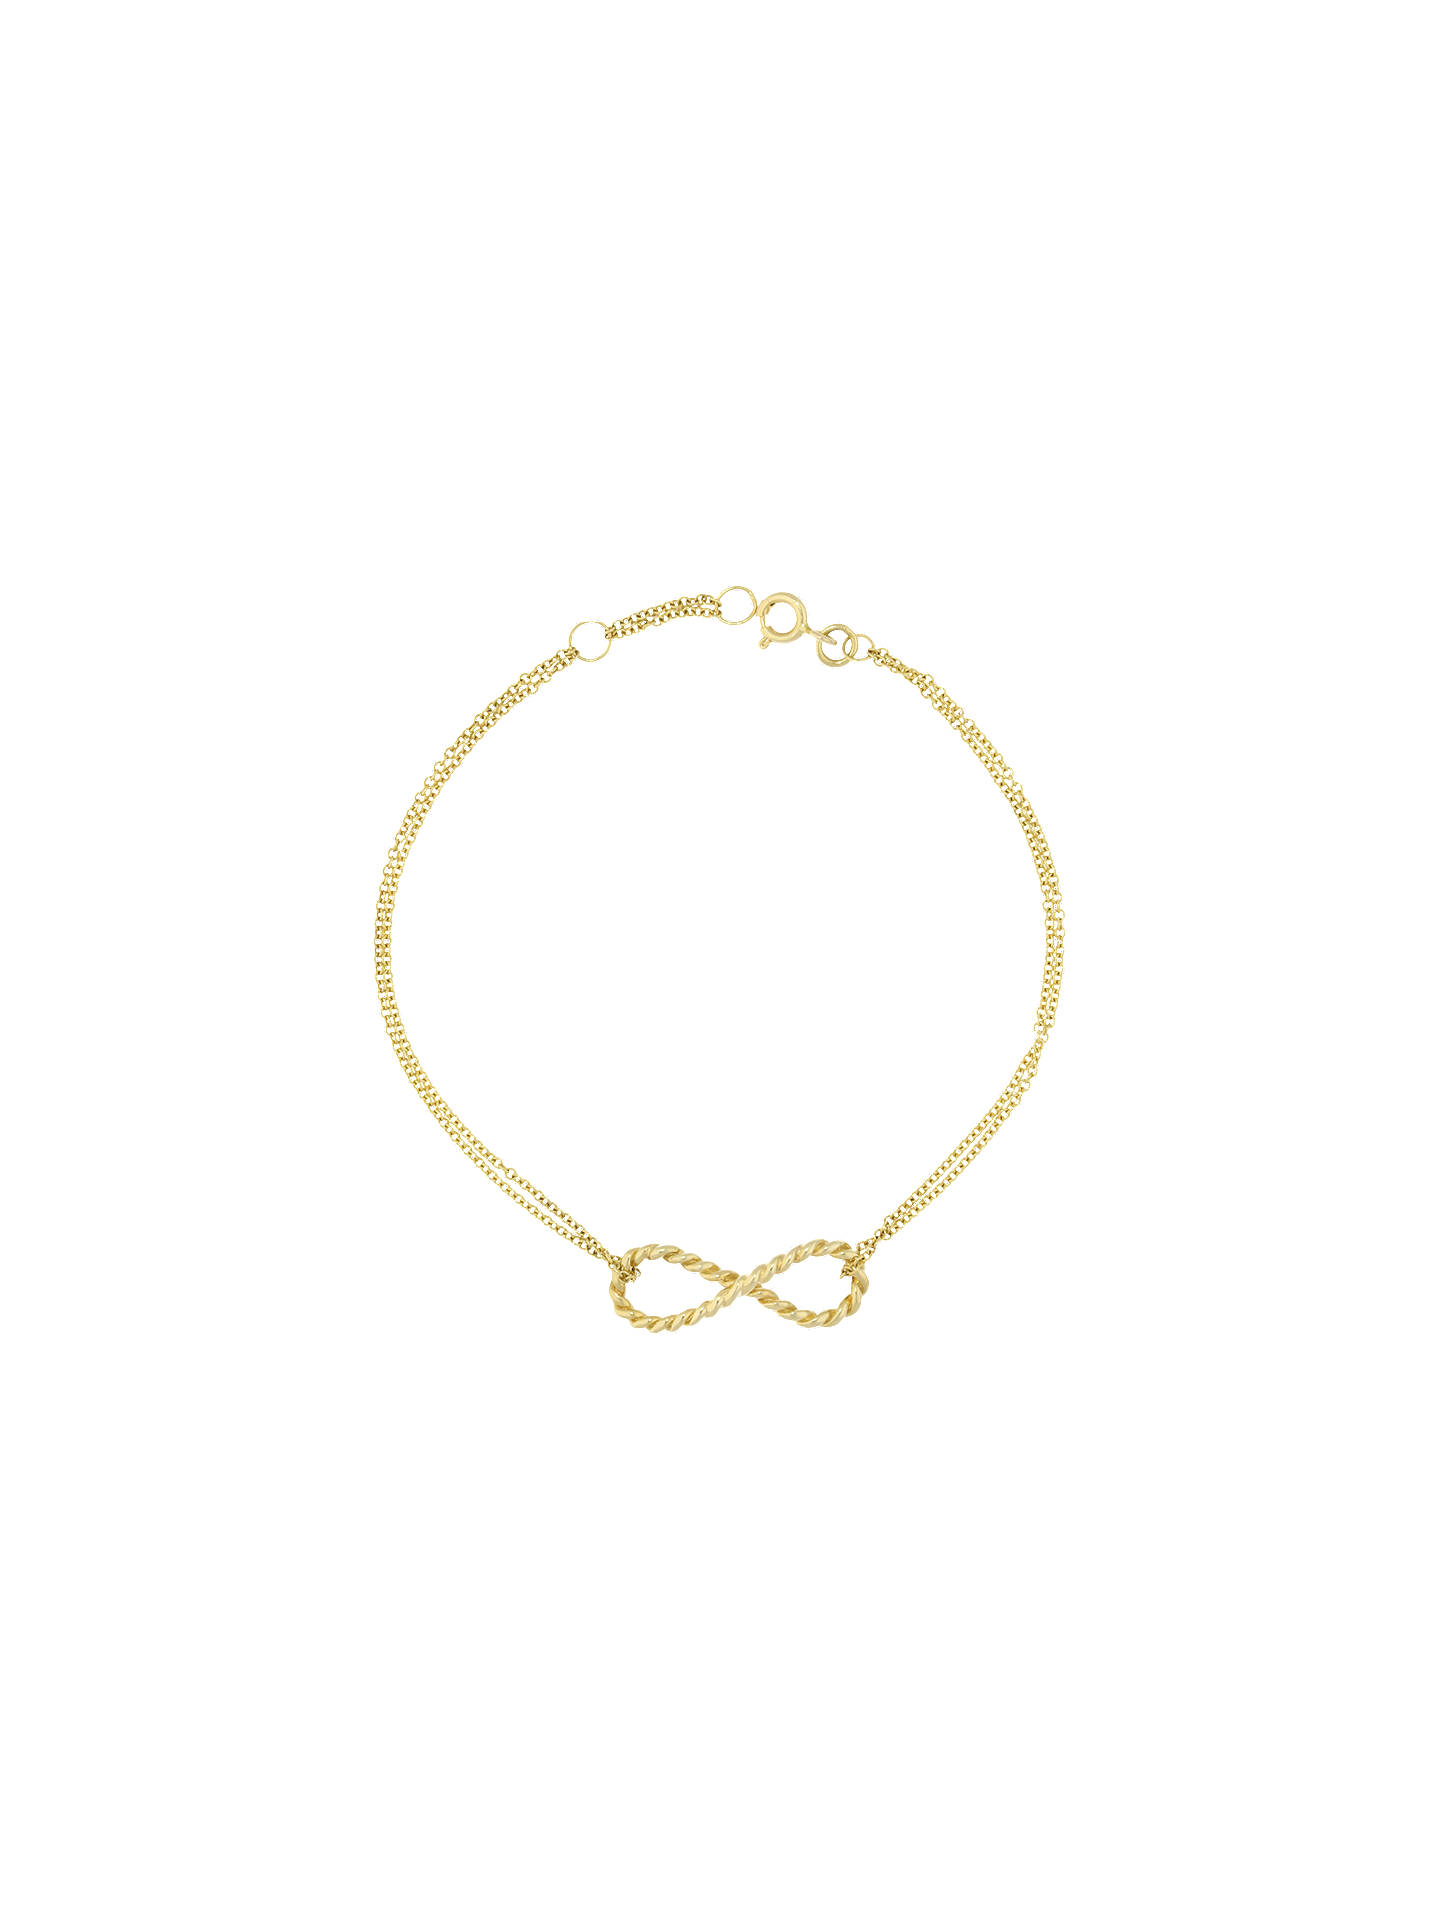 London Road 9ct Gold Infinity Bracelet Online At Johnlewis